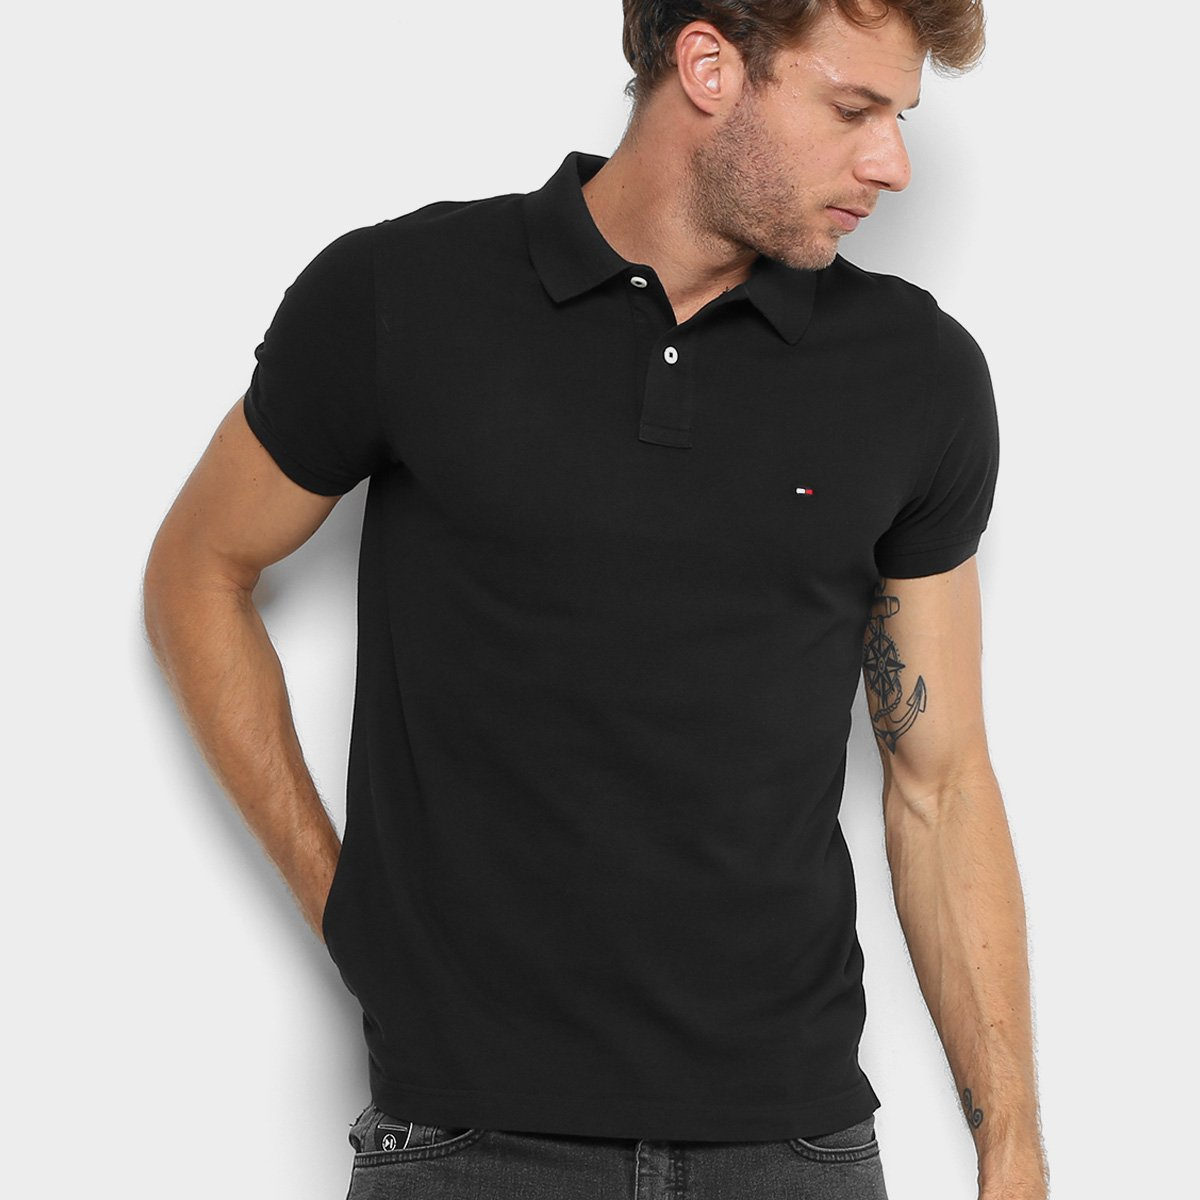 3154400b0 Camisa Polo Tommy Hilfiger Slim Fit Clássica Masculina. undefined